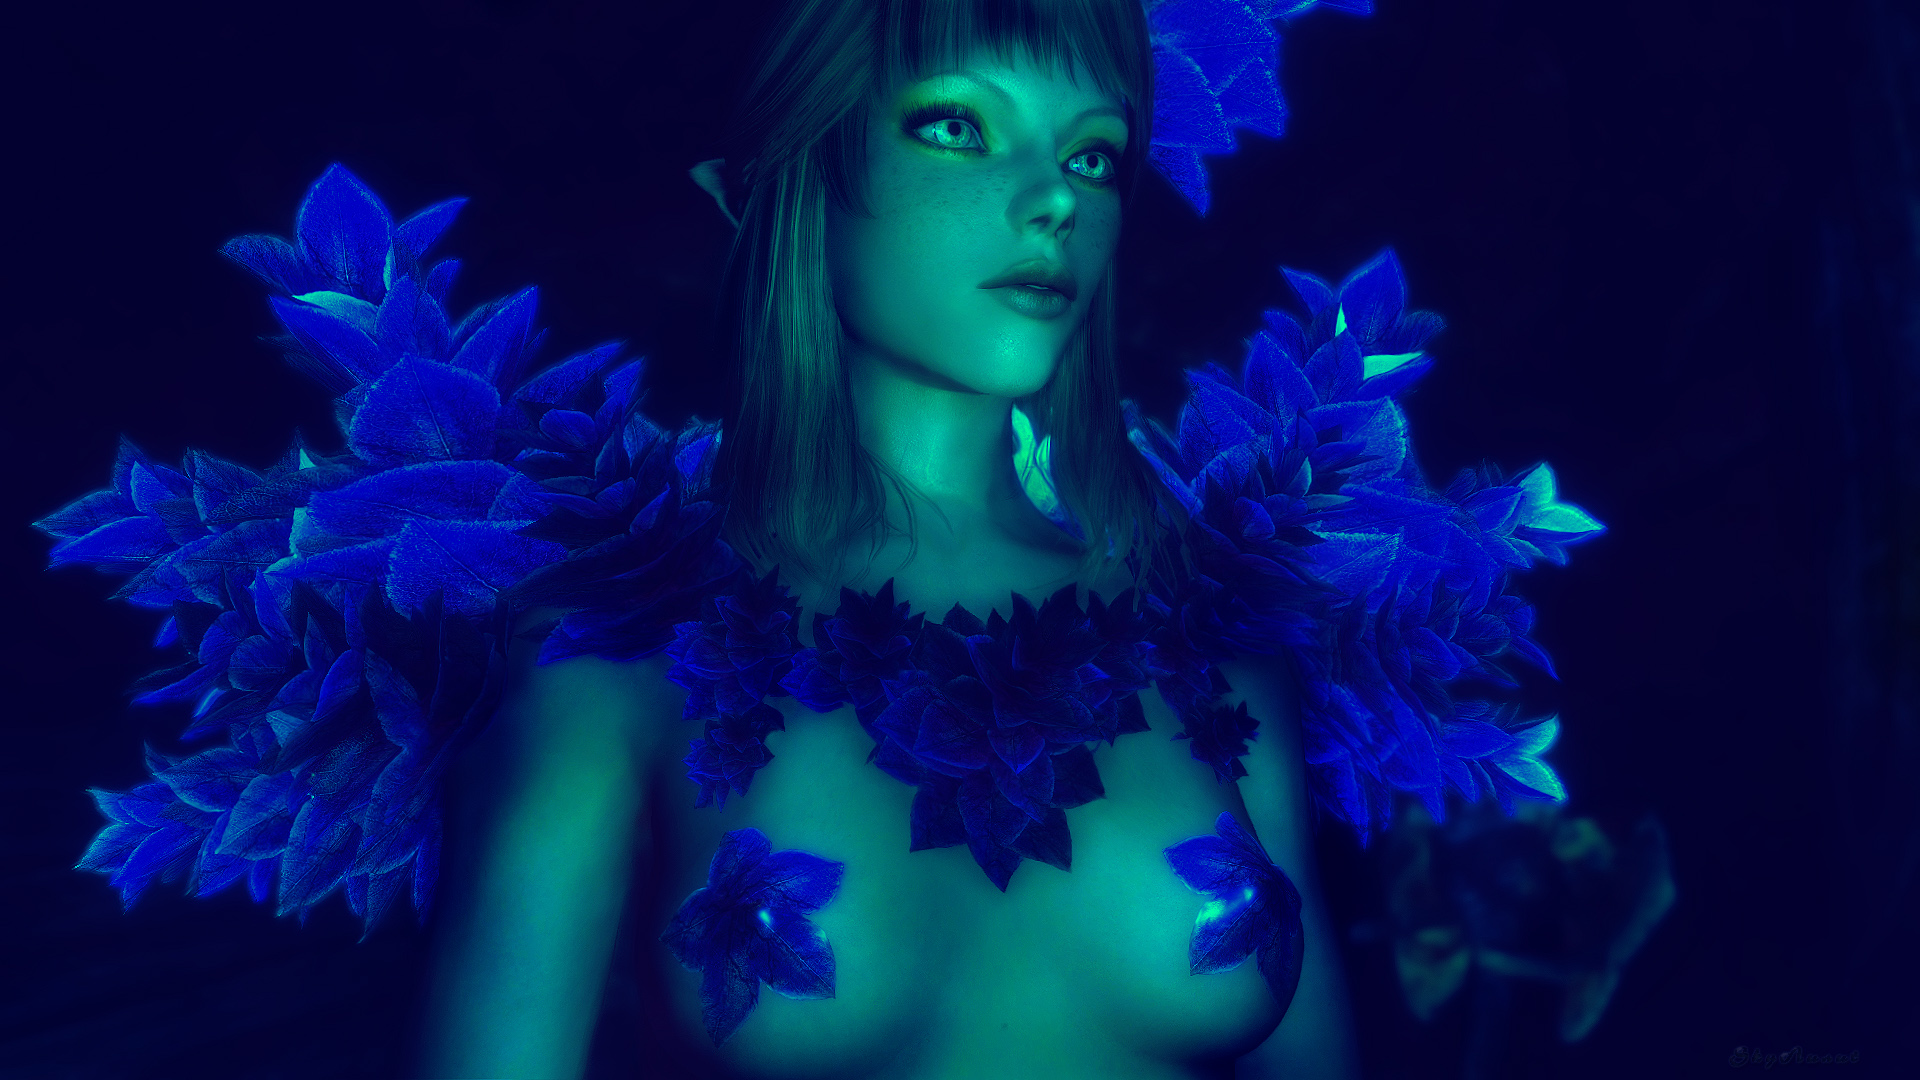 Blue Flower Elf